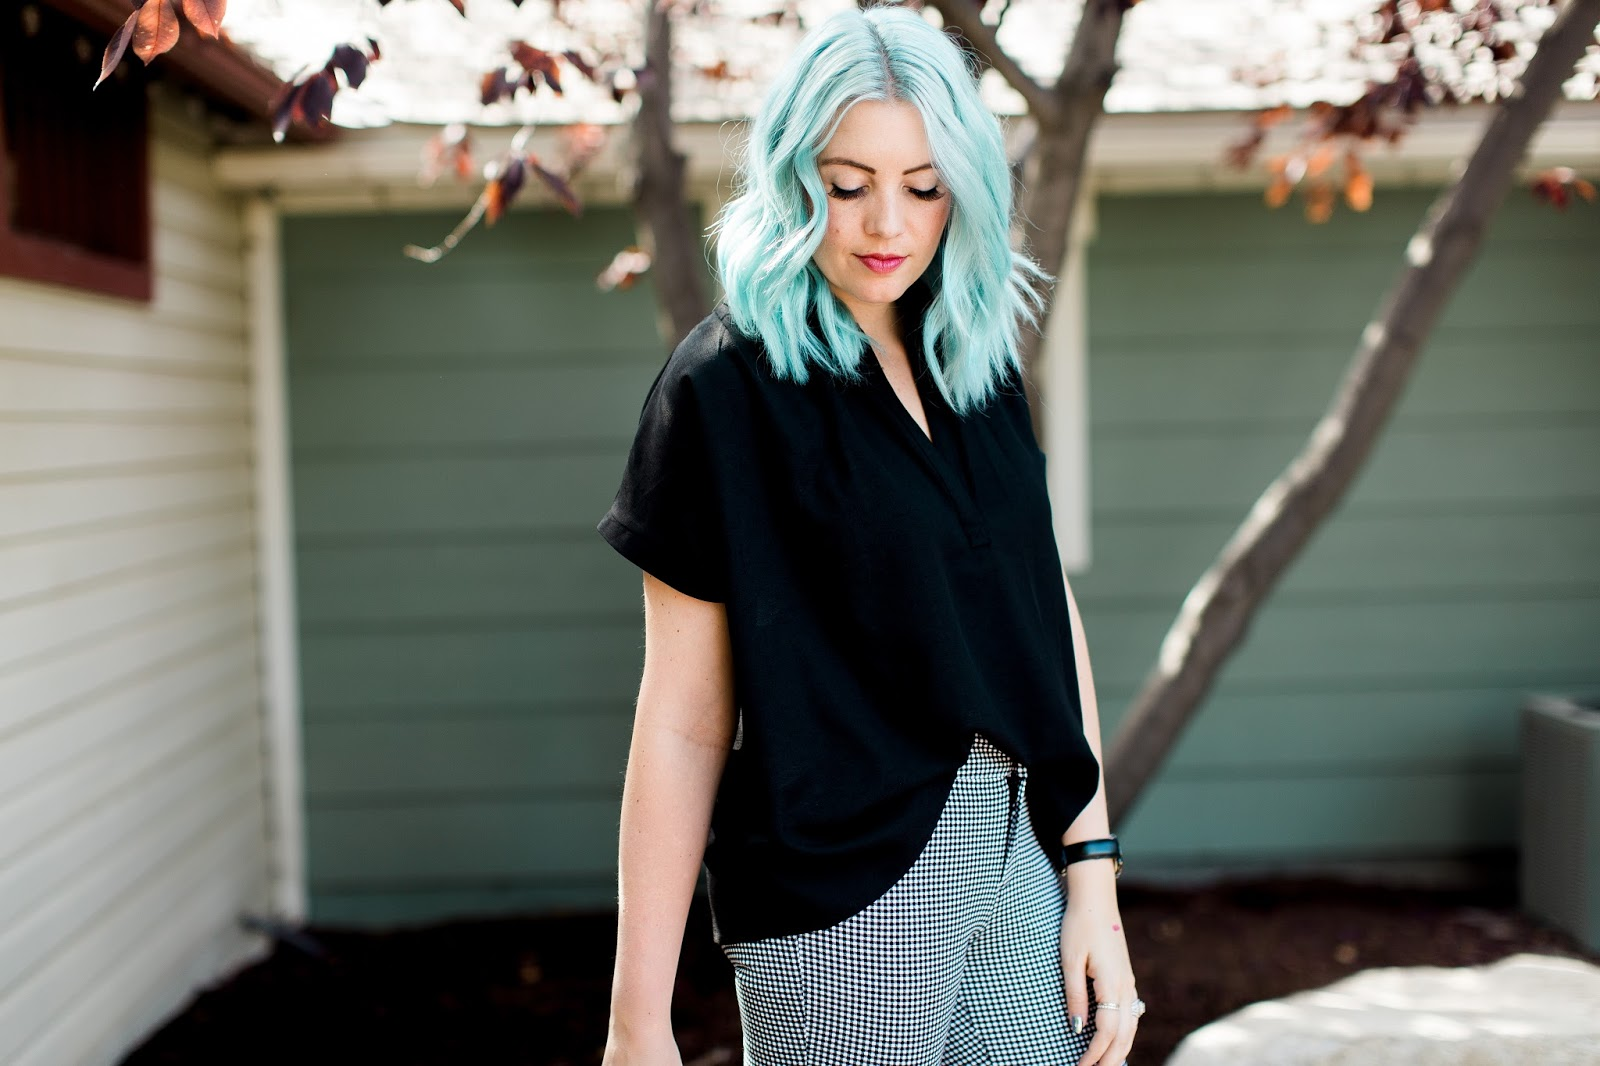 Black Shirt, Gingham Pants,Blue Hair